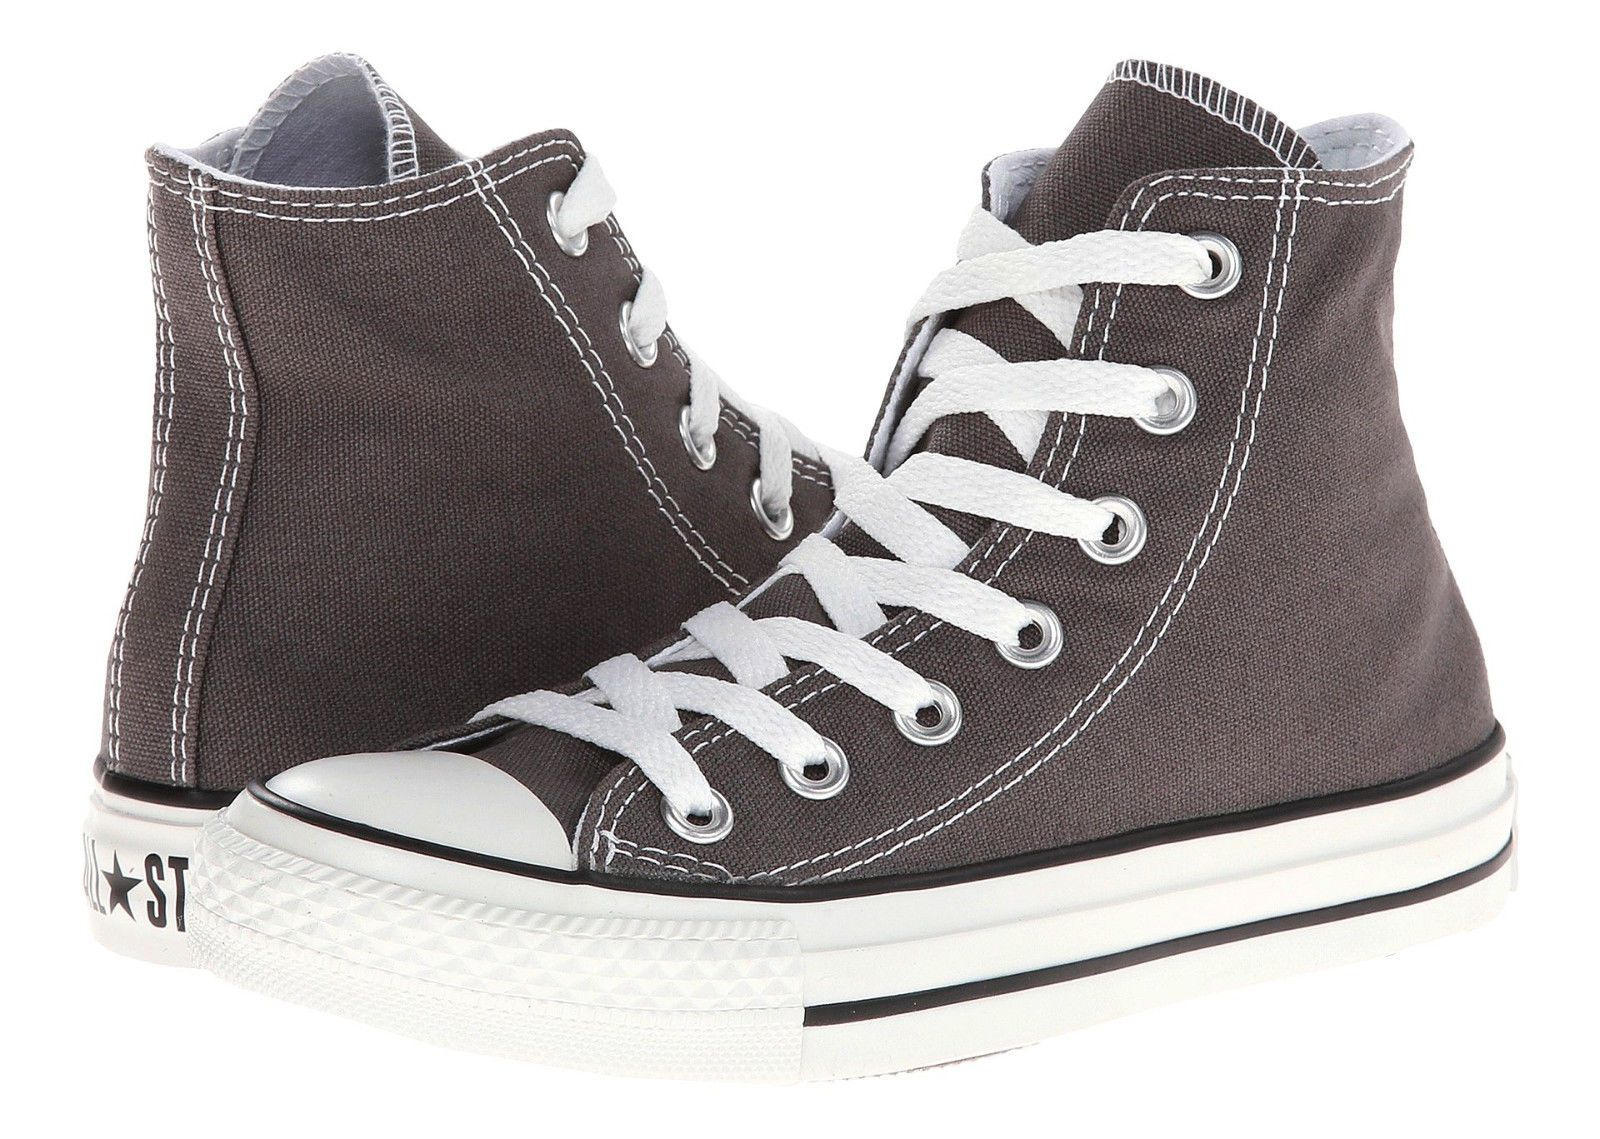 7deb3ae6f2d Converse Chuck Taylor All Star Hi Tops Charcoal All Sizes Womens Sneakers  Shoes